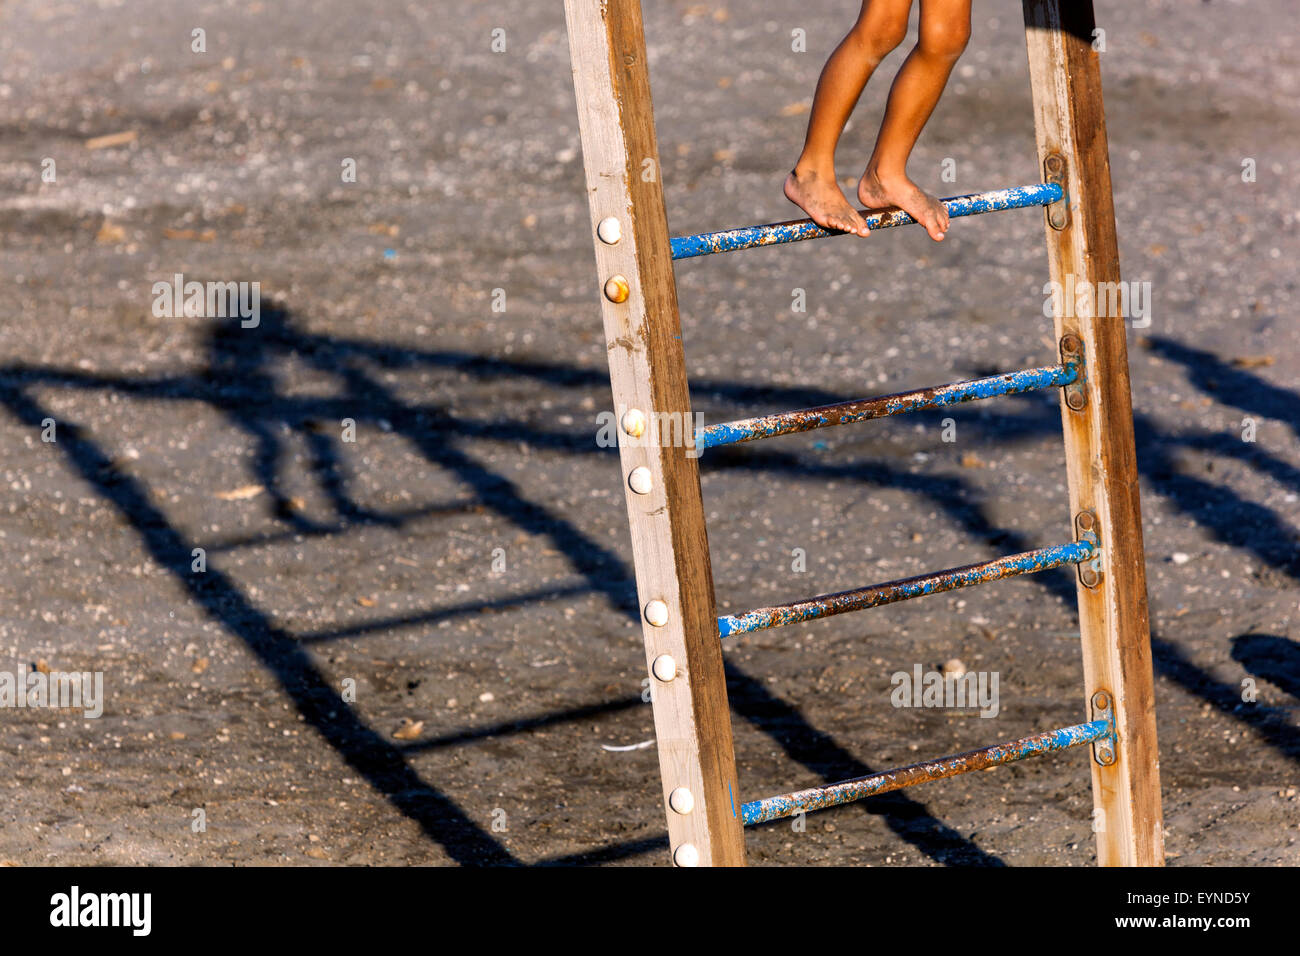 Boy feet on children's climbing frame and projecting a shadow, Santorini beach, Greece - Stock Image